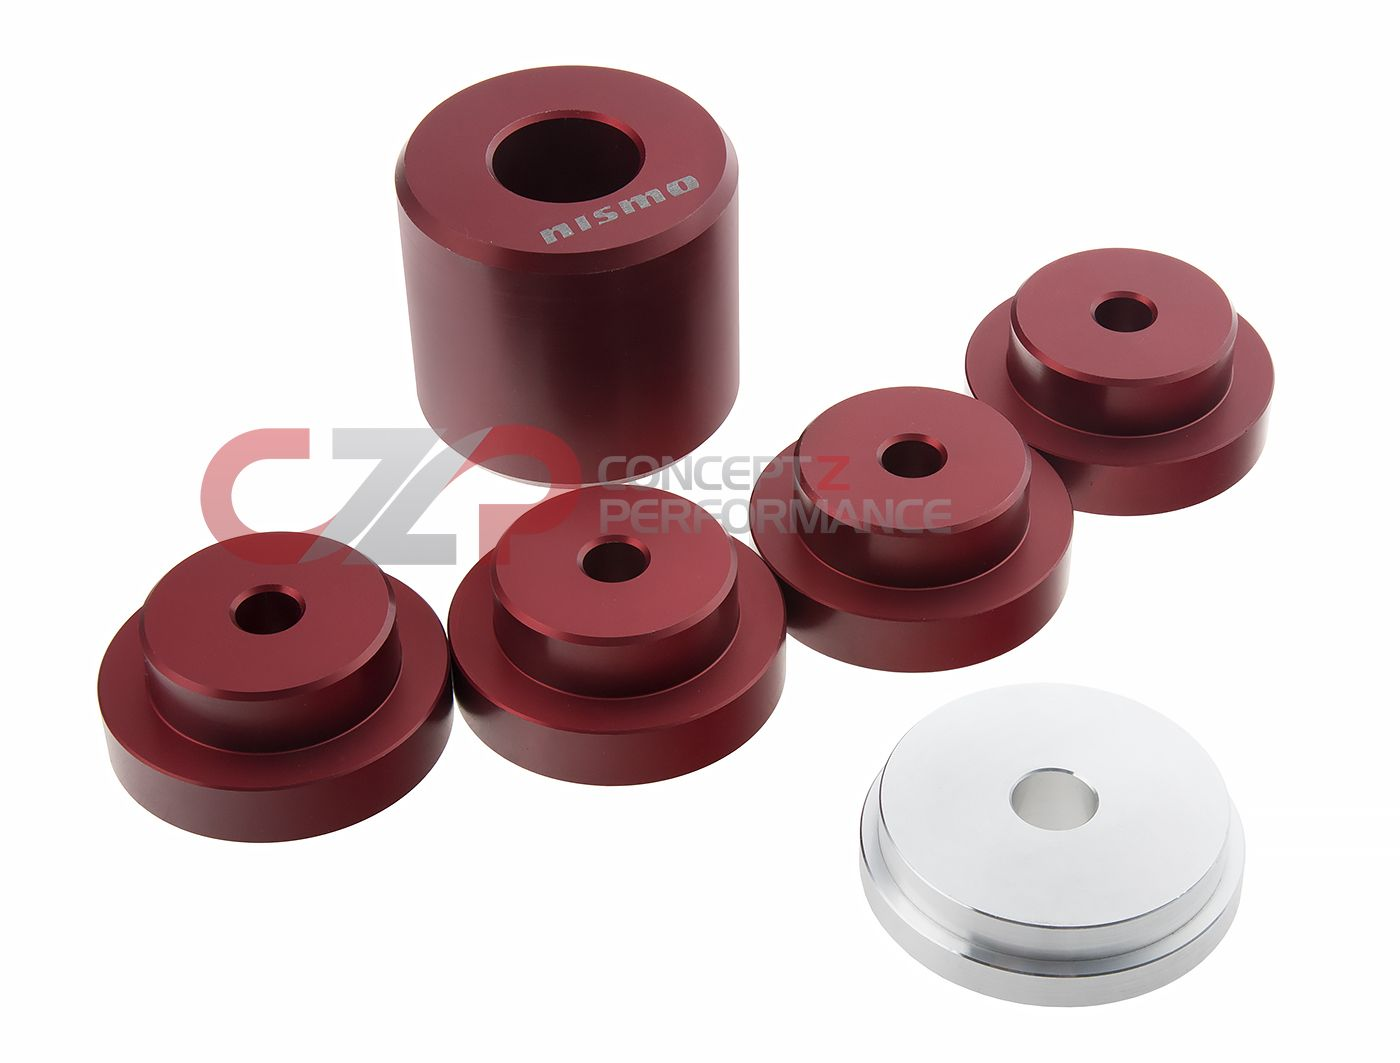 Nismo Solid Differential Bushing Set - Nissan 350Z / Infiniti G35